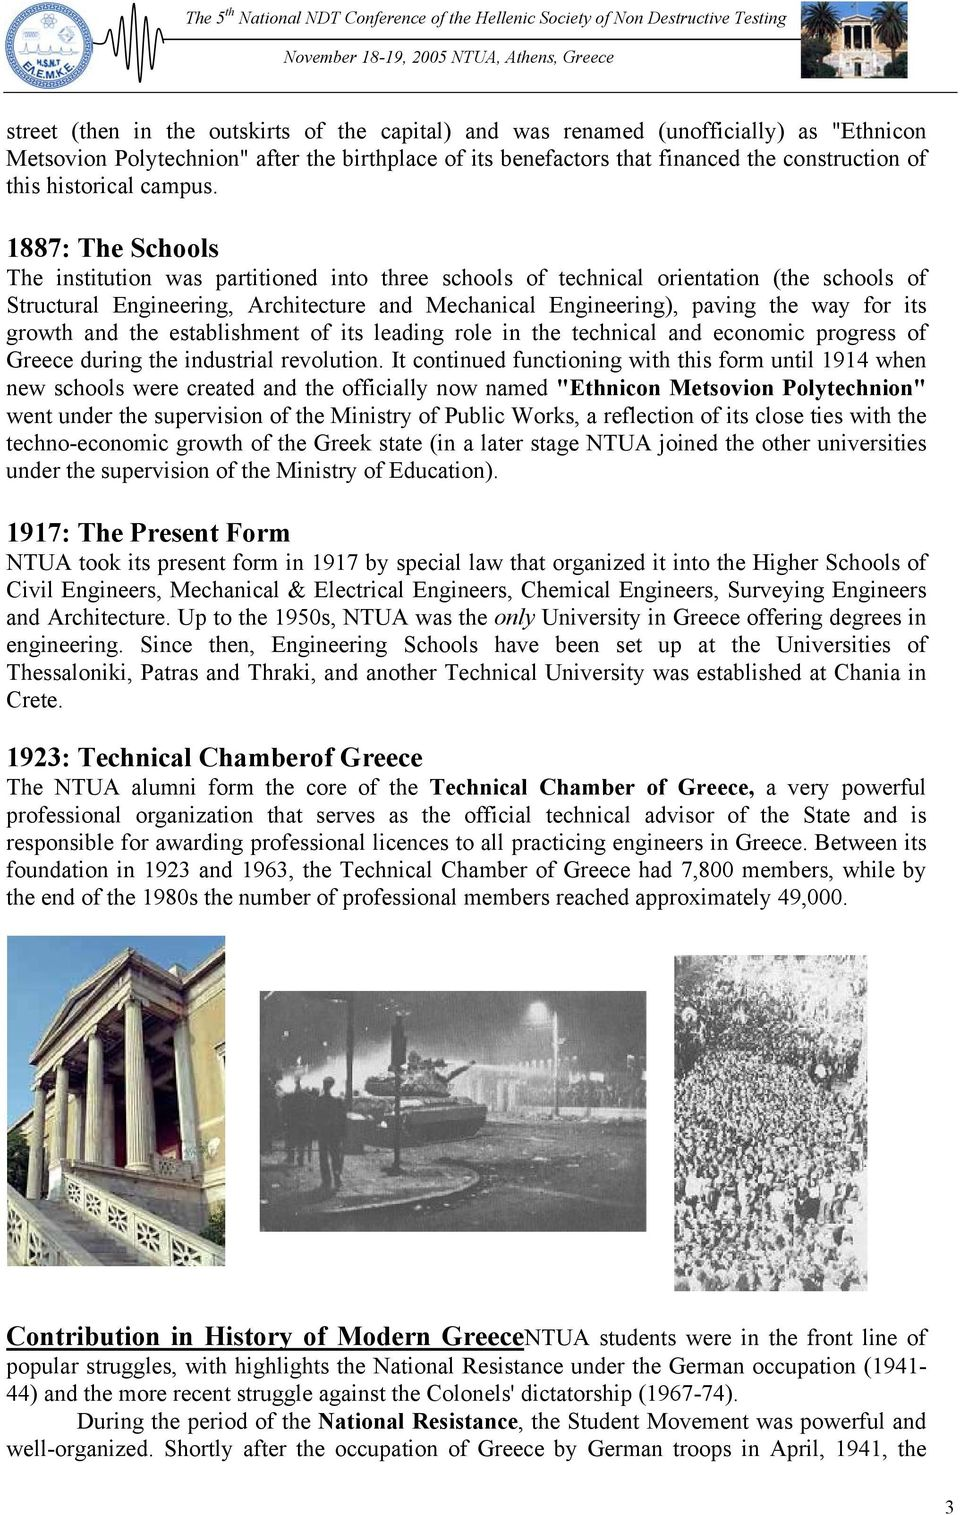 1887: The Schools The institution was partitioned into three schools of technical orientation (the schools of Structural Engineering, Architecture and Mechanical Engineering), paving the way for its